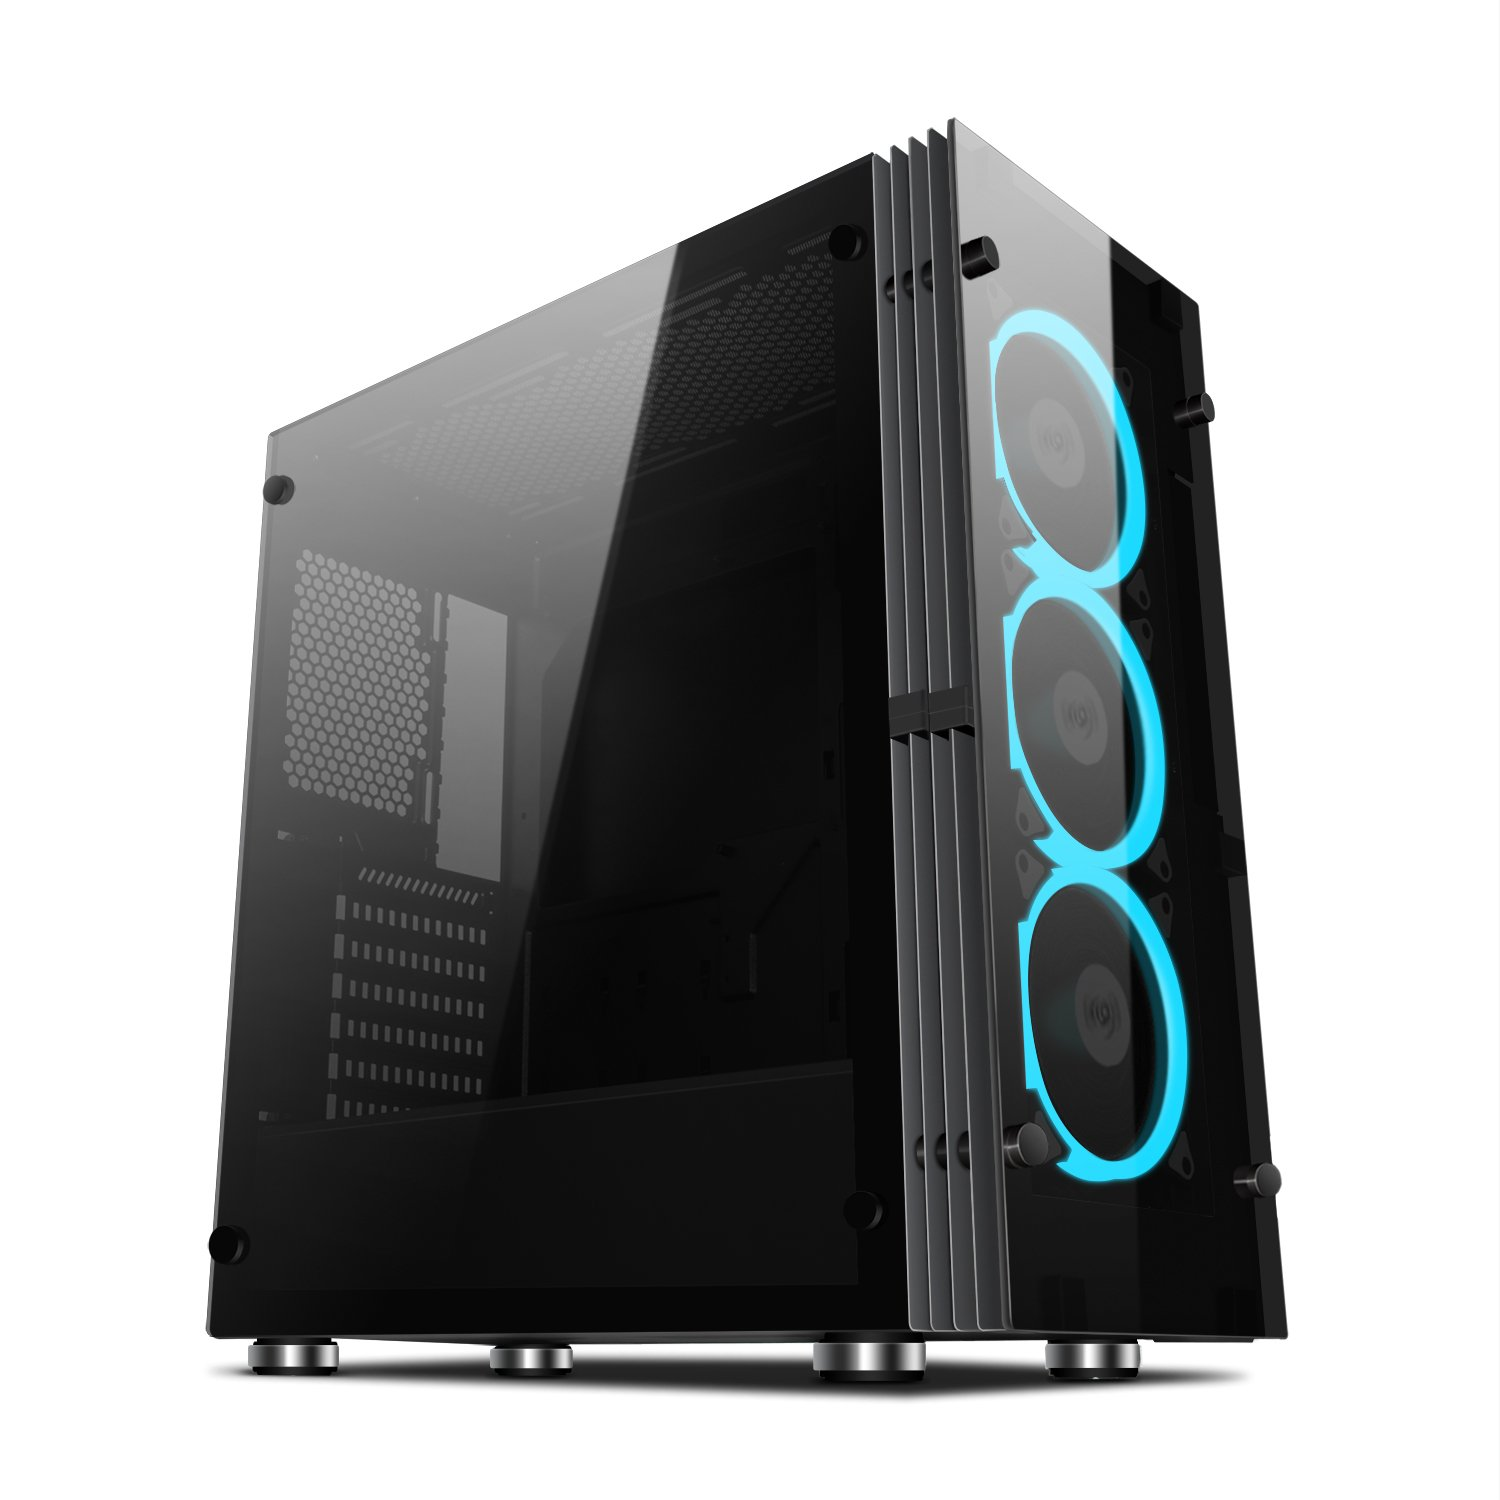 Aigo Atlantis ATX Mid-Tower Desktop  Computer Gaming Case Tempered Glass Windows With 3pcs 120mm LED Ring Fans Ice Blue Ring Fans Pre-installed